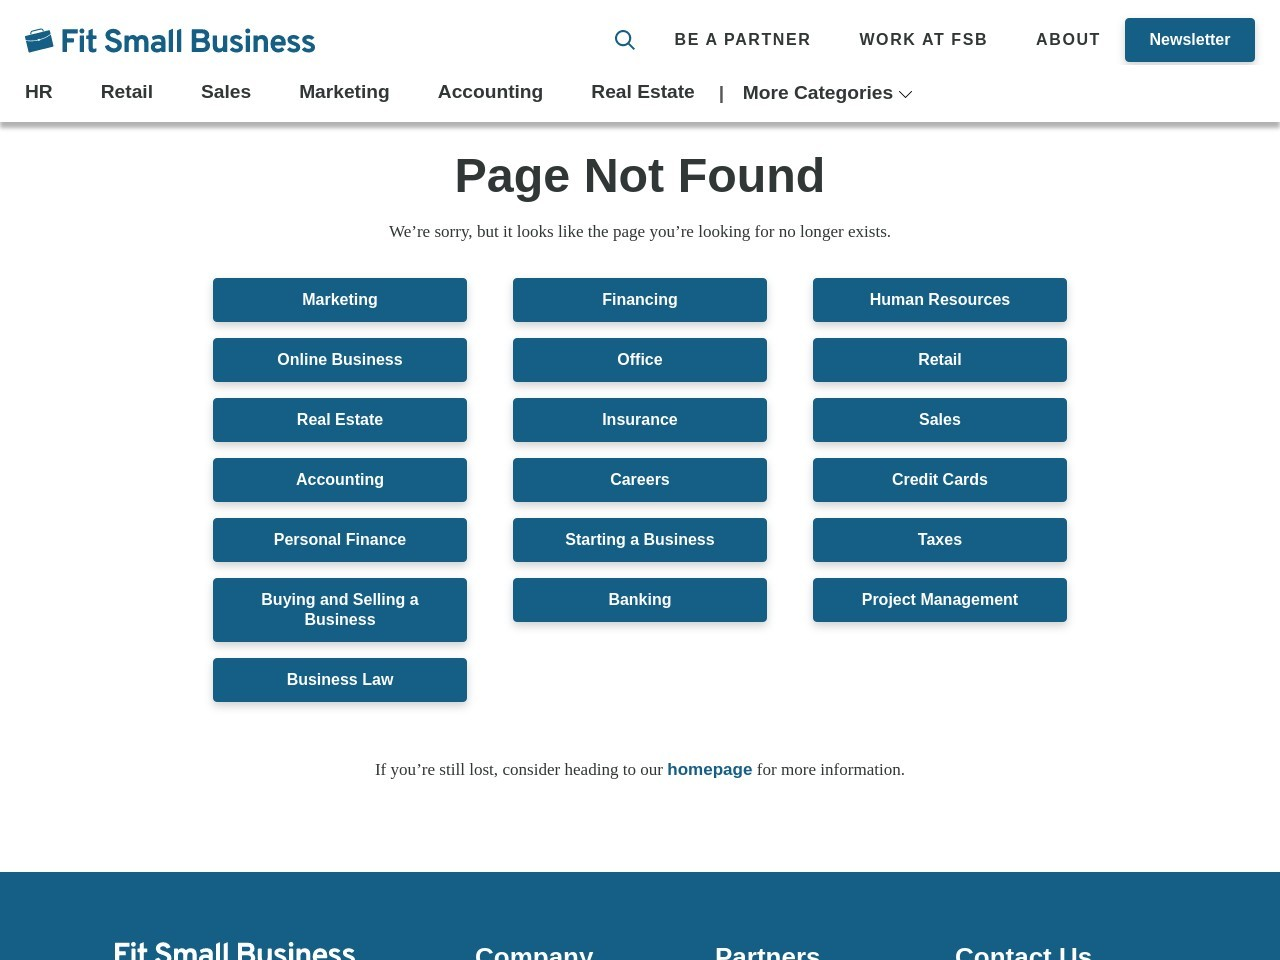 How to Set Up Your Indeed Company Page & Career Page For Maximum Exposure